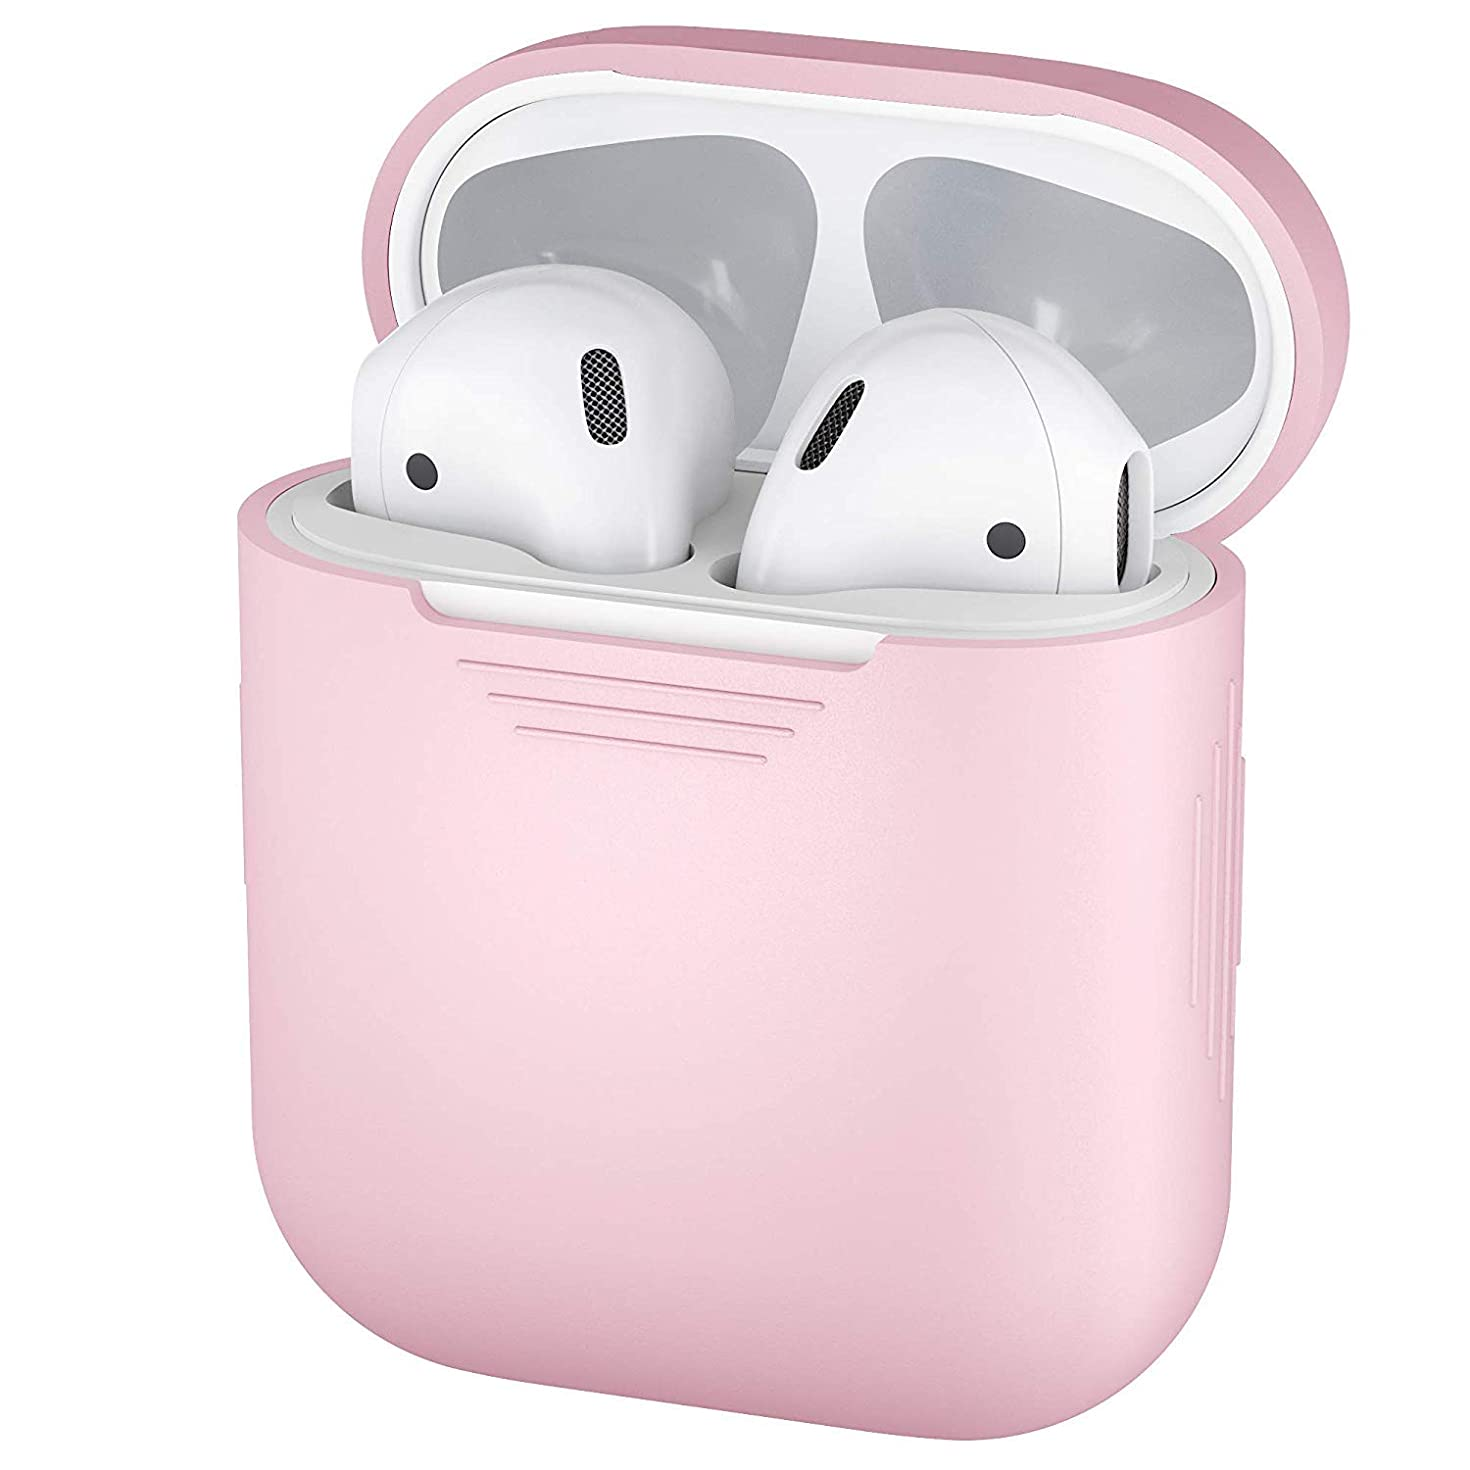 Airpods Case, LYZZO Protective Thicken Airpods Cover Soft Silicone Chargeable Headphone Case with Anti-Lost Carabiner for Apple Airpods Charging Case (Pretty in Pink)